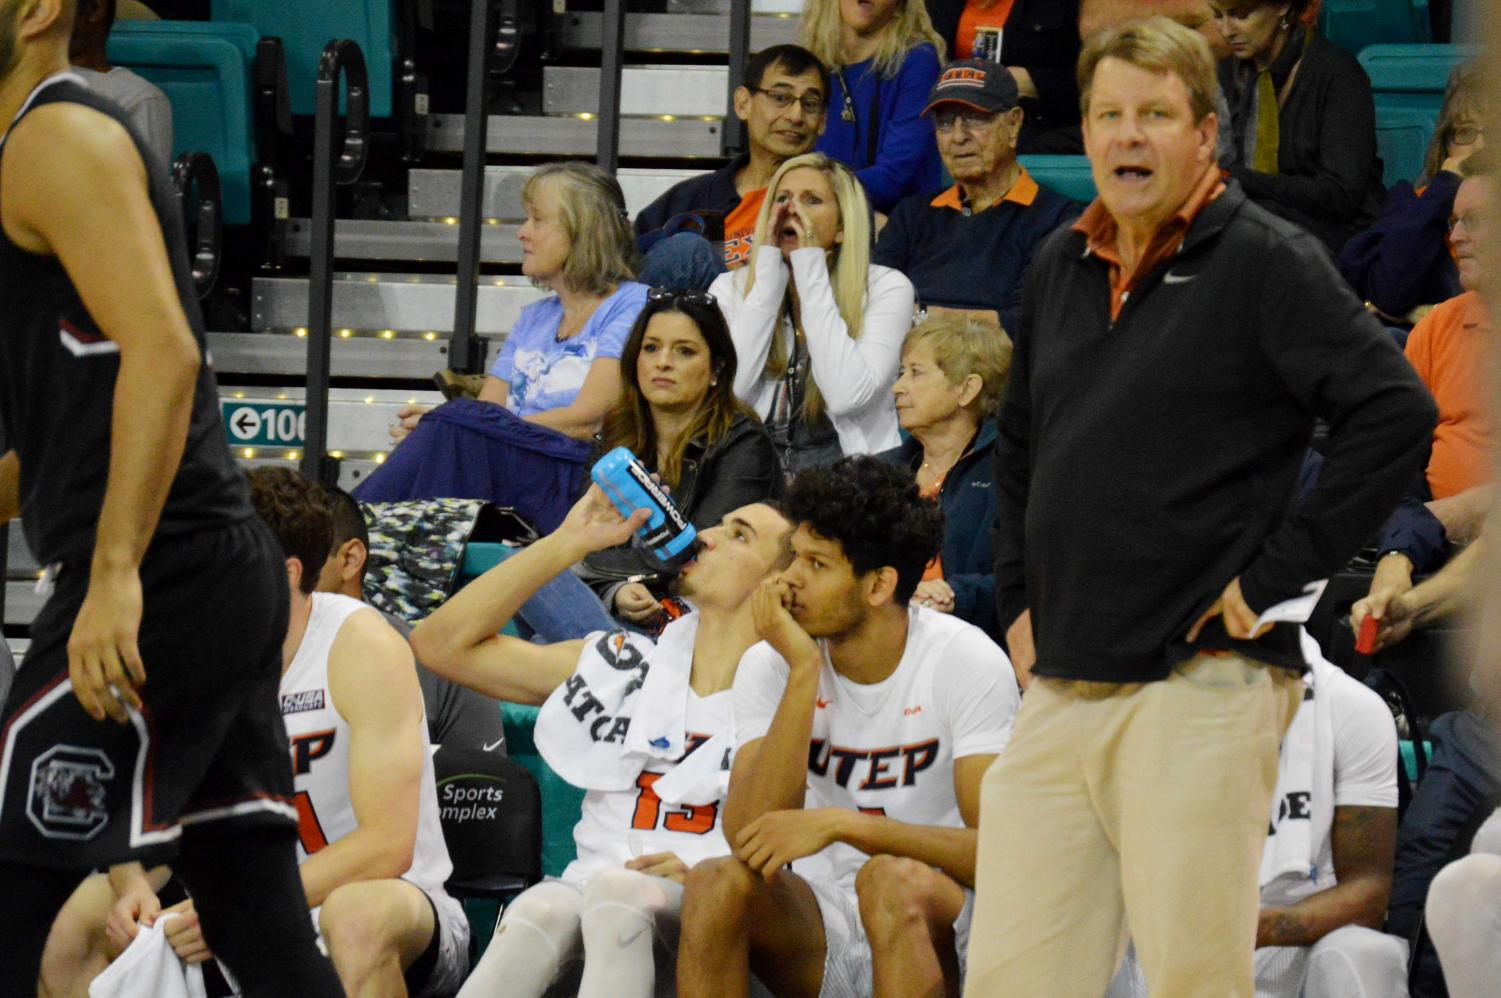 Head coach Tim Floyd and the men's basketball team struggled in their second game of the Puerto Rico Tip-off in Myrtle Beach, SC.